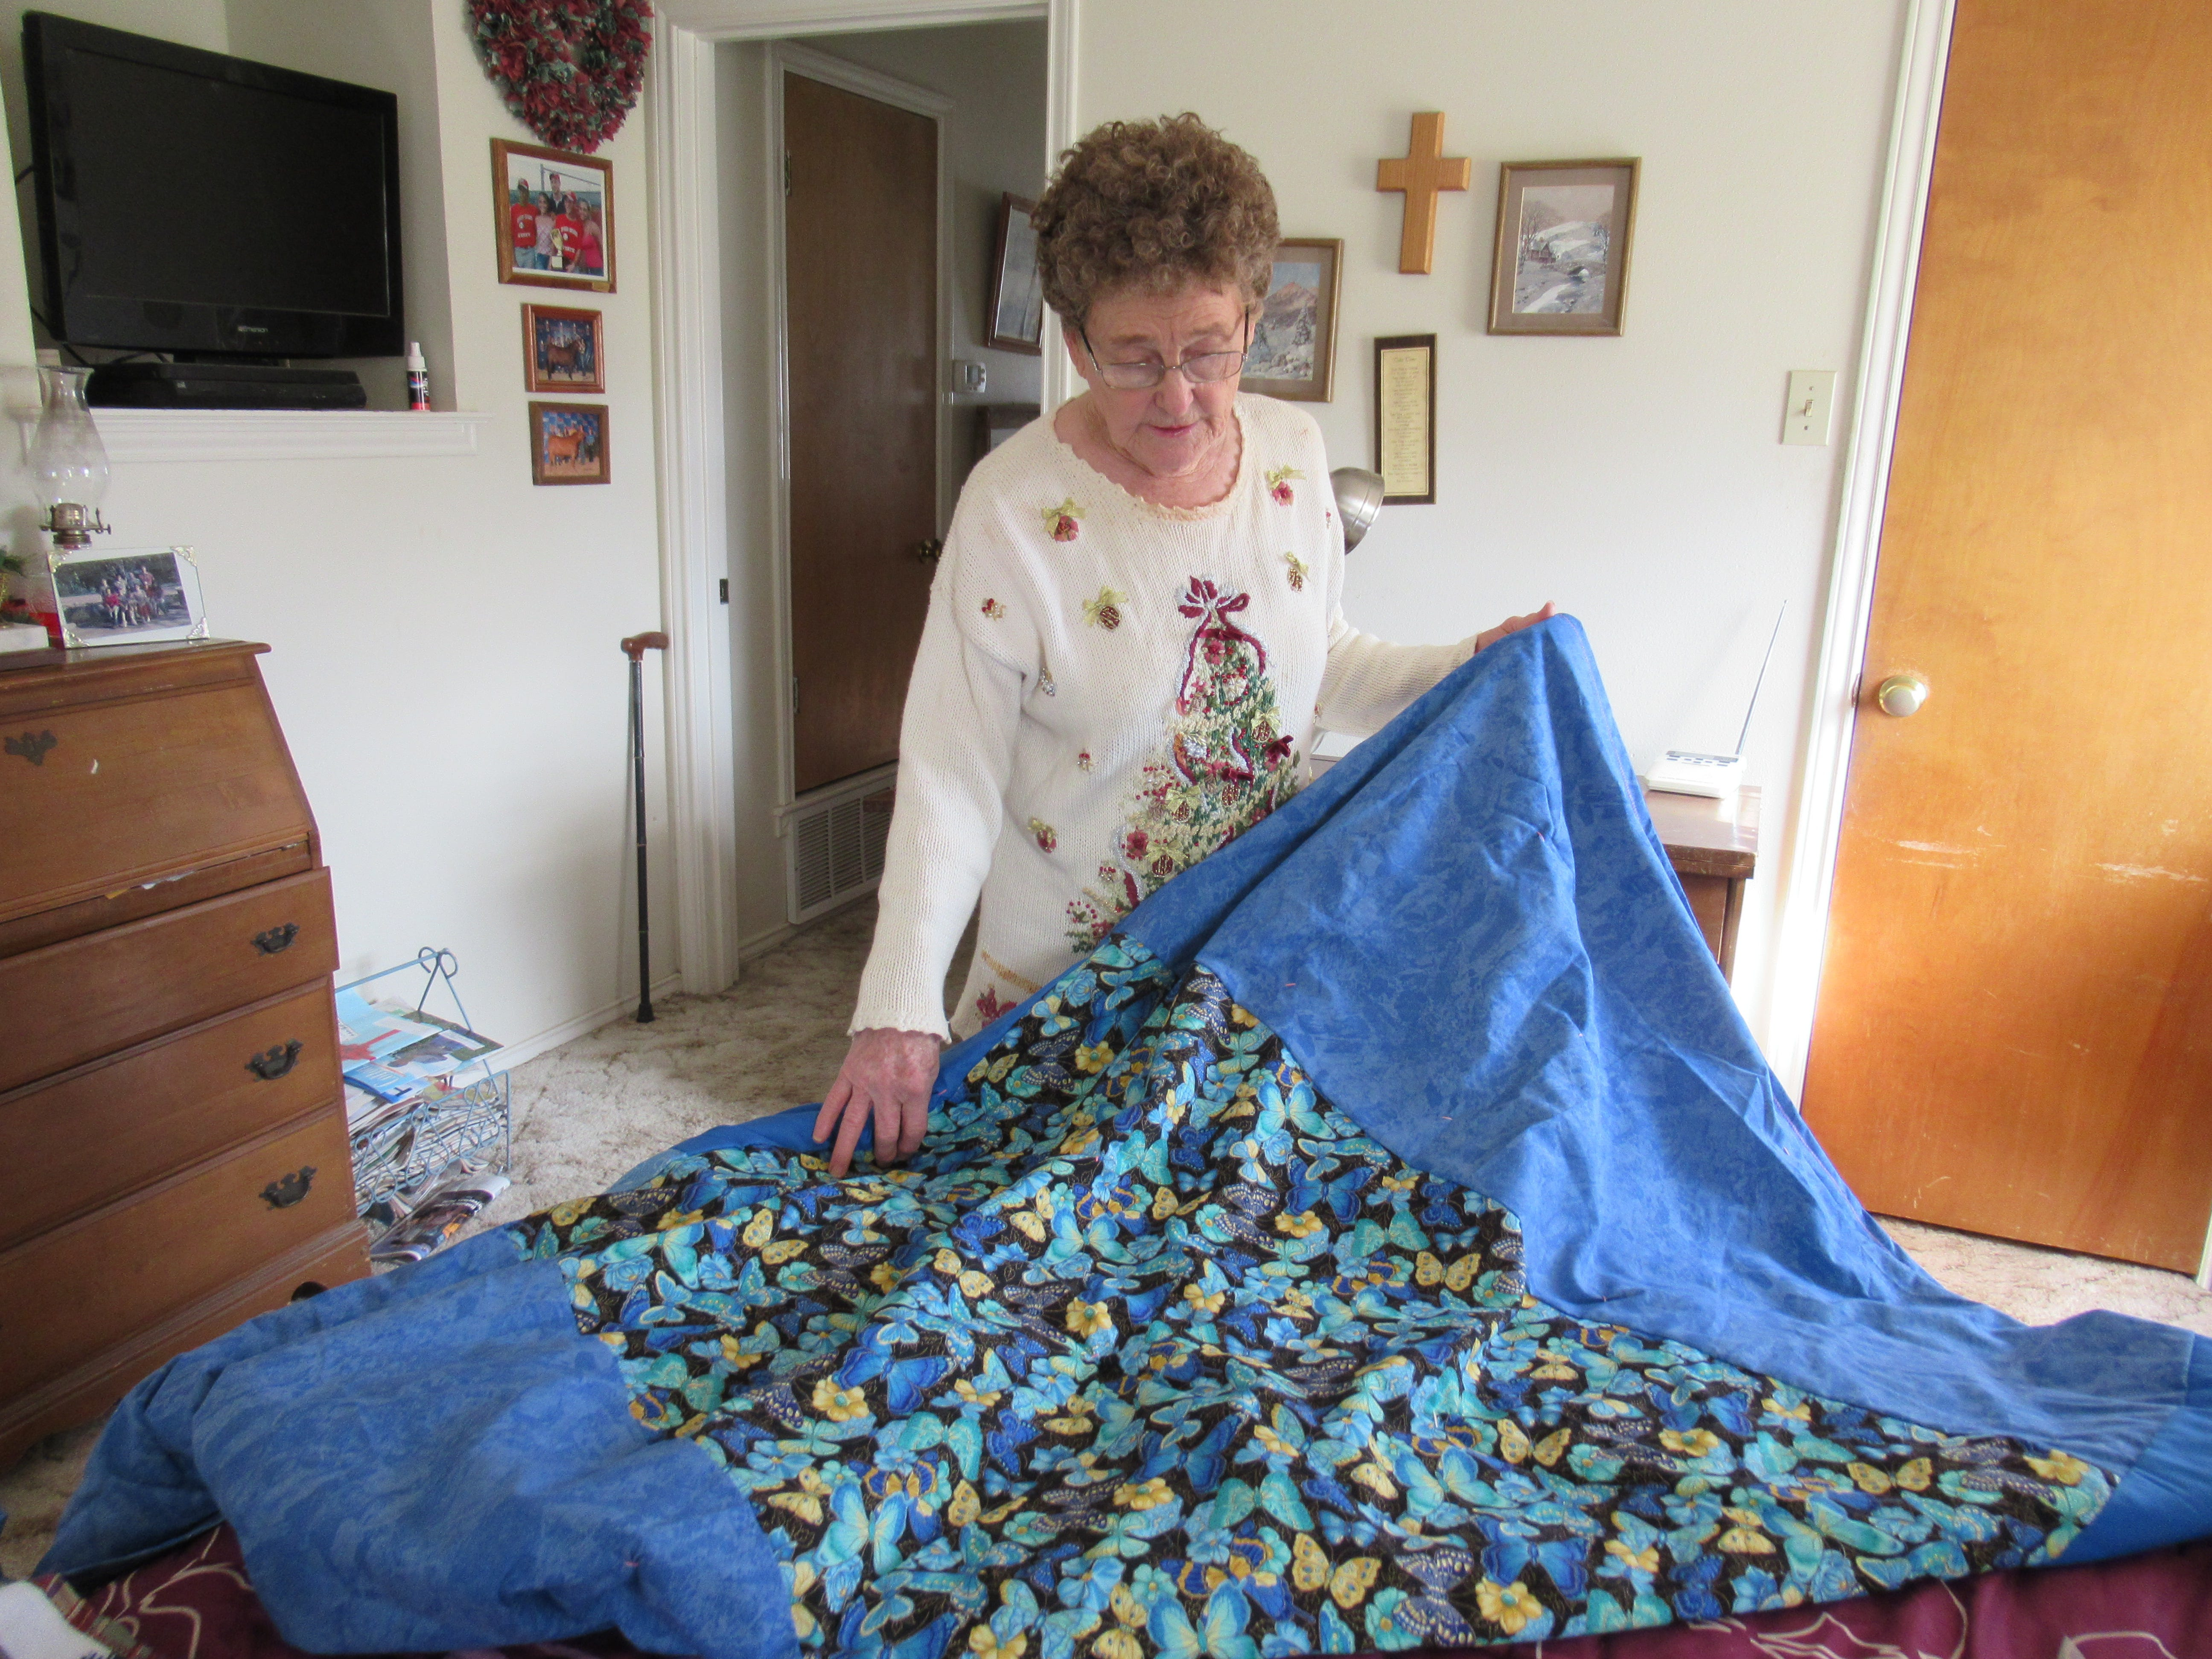 La Verne Redman describes how she color coordinated the different material pieces of her quilt, Monday, Dec. 18, 2018 at her home in Miles, Texas.